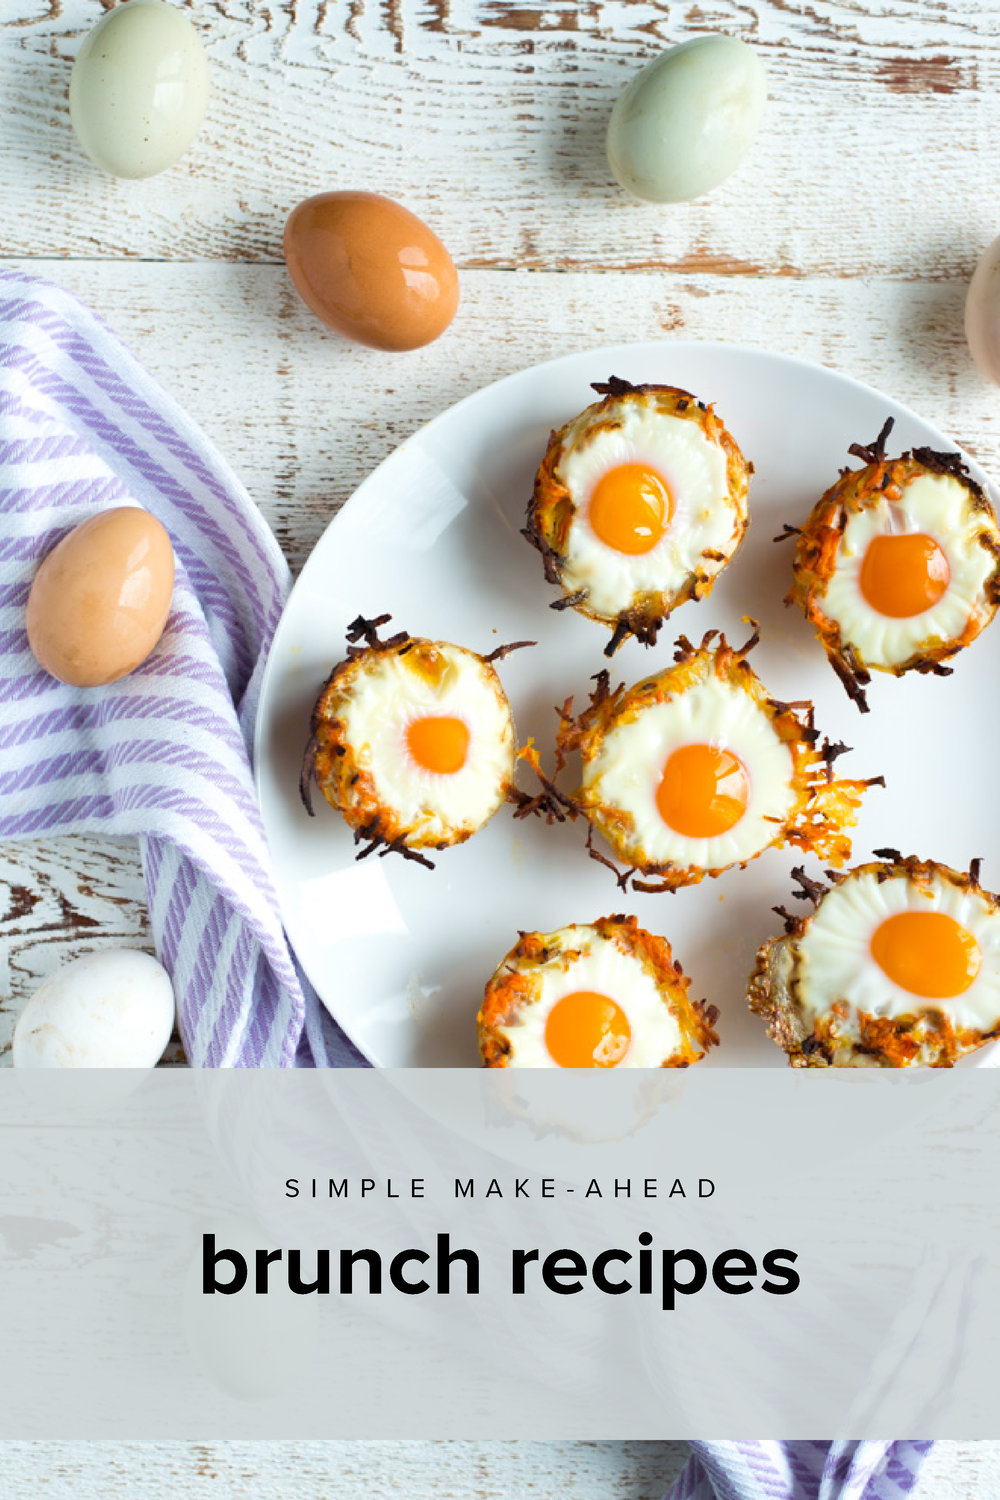 Looking for simple, healthy, make-ahead brunch recipes? Here's a collection of easy, healthy, totally delicious recipes perfect for your next brunch. #realfoodwholelife #helathy #recipe #brunch #easyrecipe #makeahead #mealprep #glutenfree #dairyfree #paleo #vegetarian